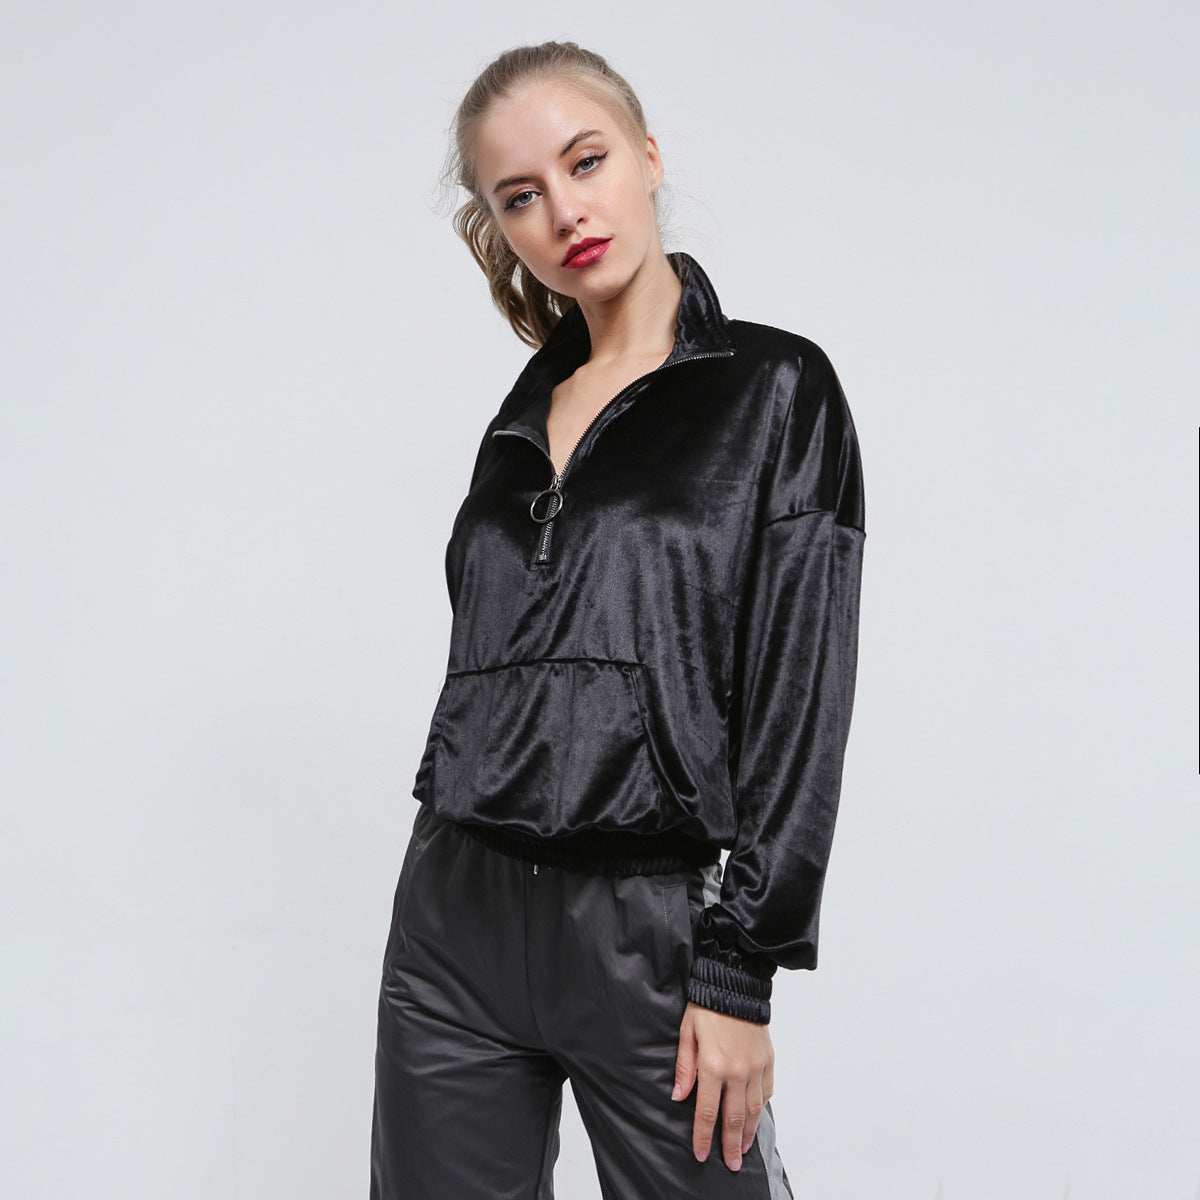 Sexy Black Front Zip Up Closure Side Pockets Long Sleeves Jacket